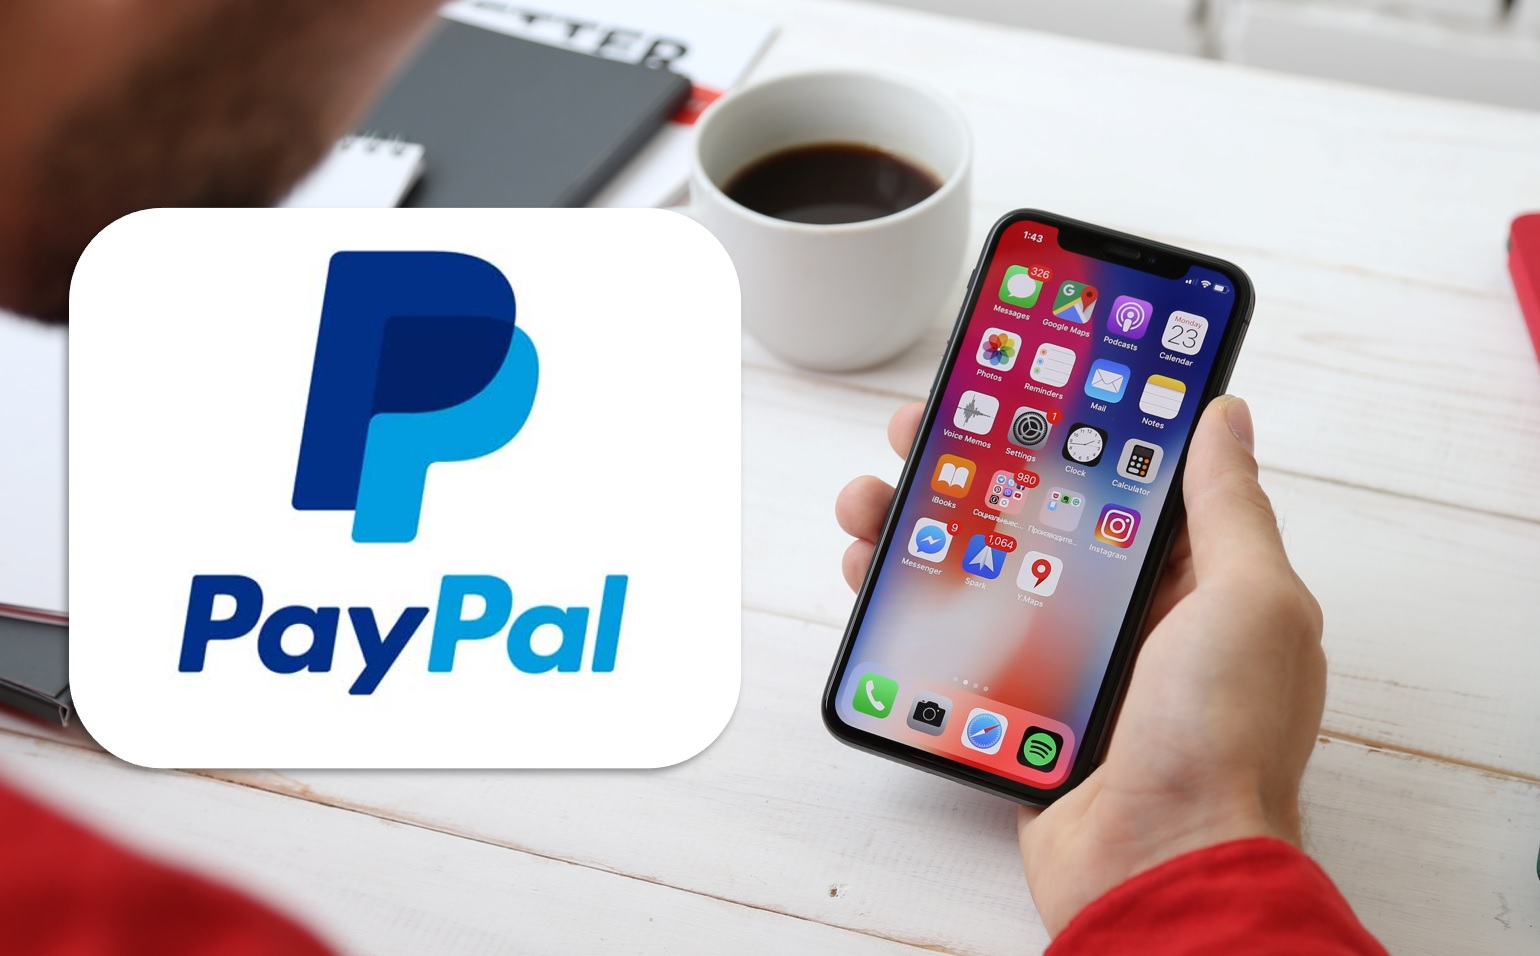 Criminals use paypal to launder money from covid-19 relief fund